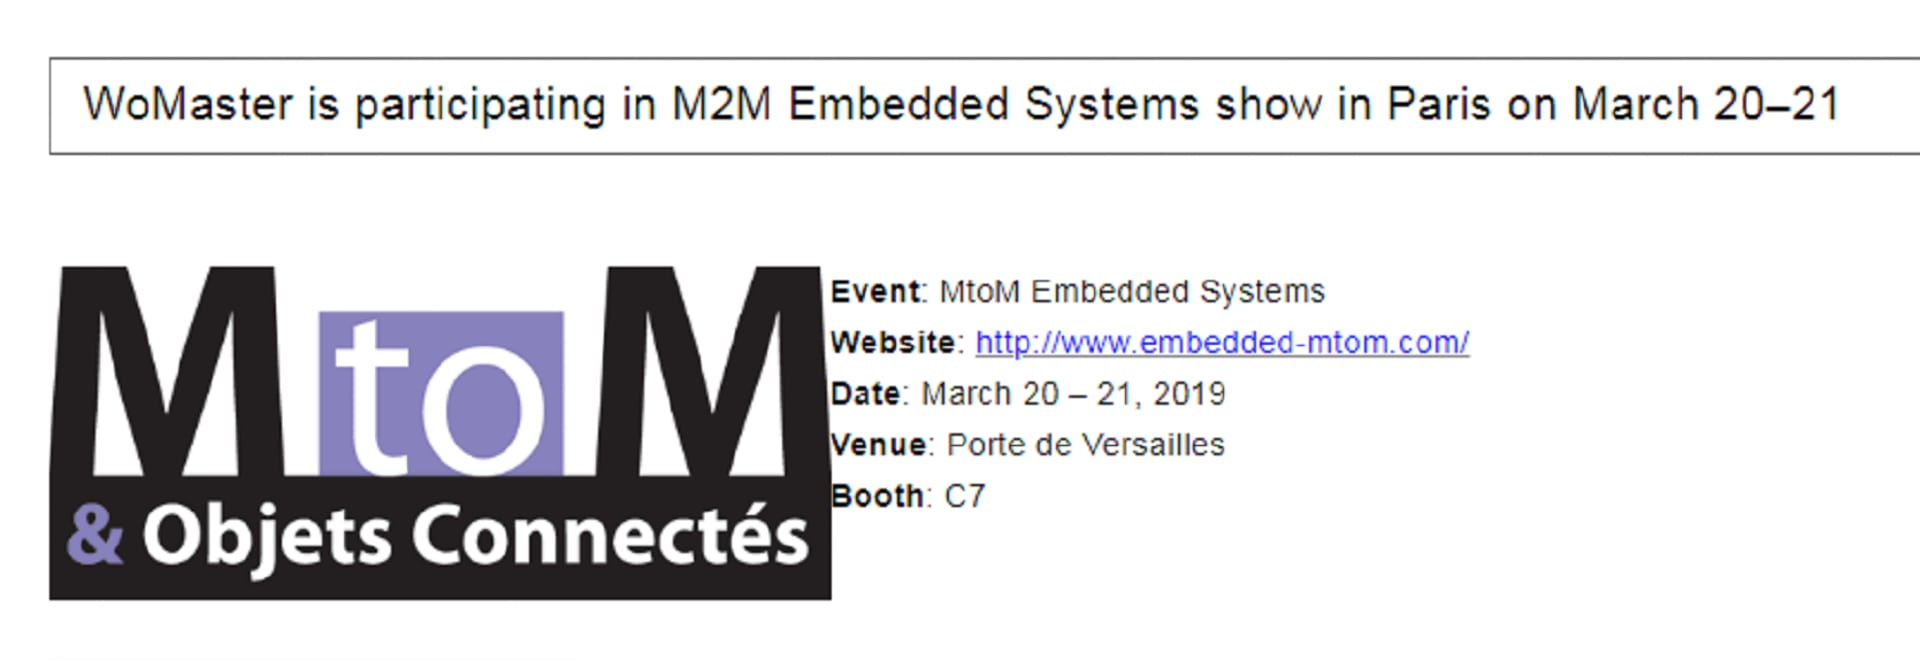 MtoM Embedded Systems WoMaster